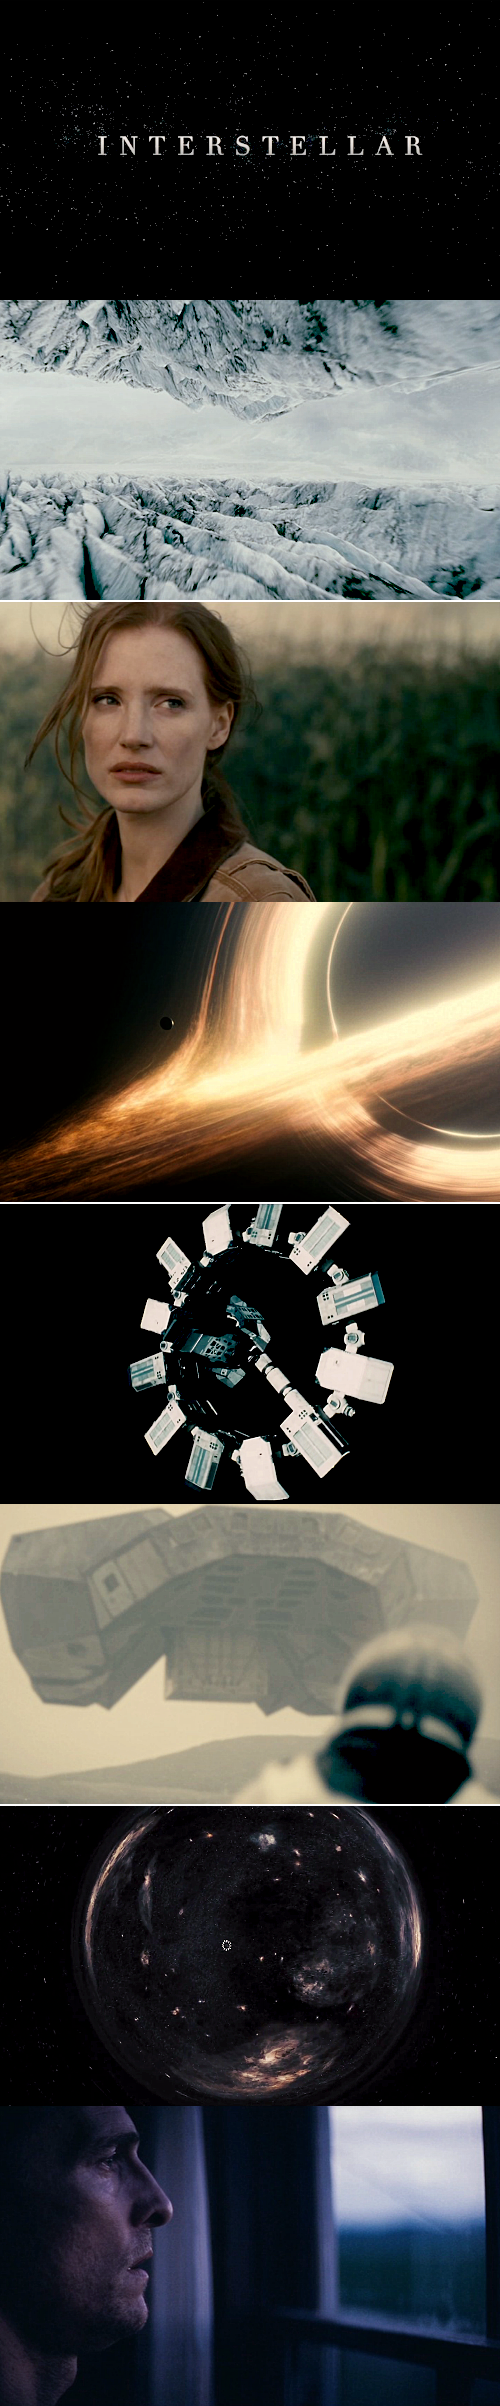 Interstellar: Do not go gentle into that good night; Old age should burn and rave at close of day. Rage, rage against the dying of the light.